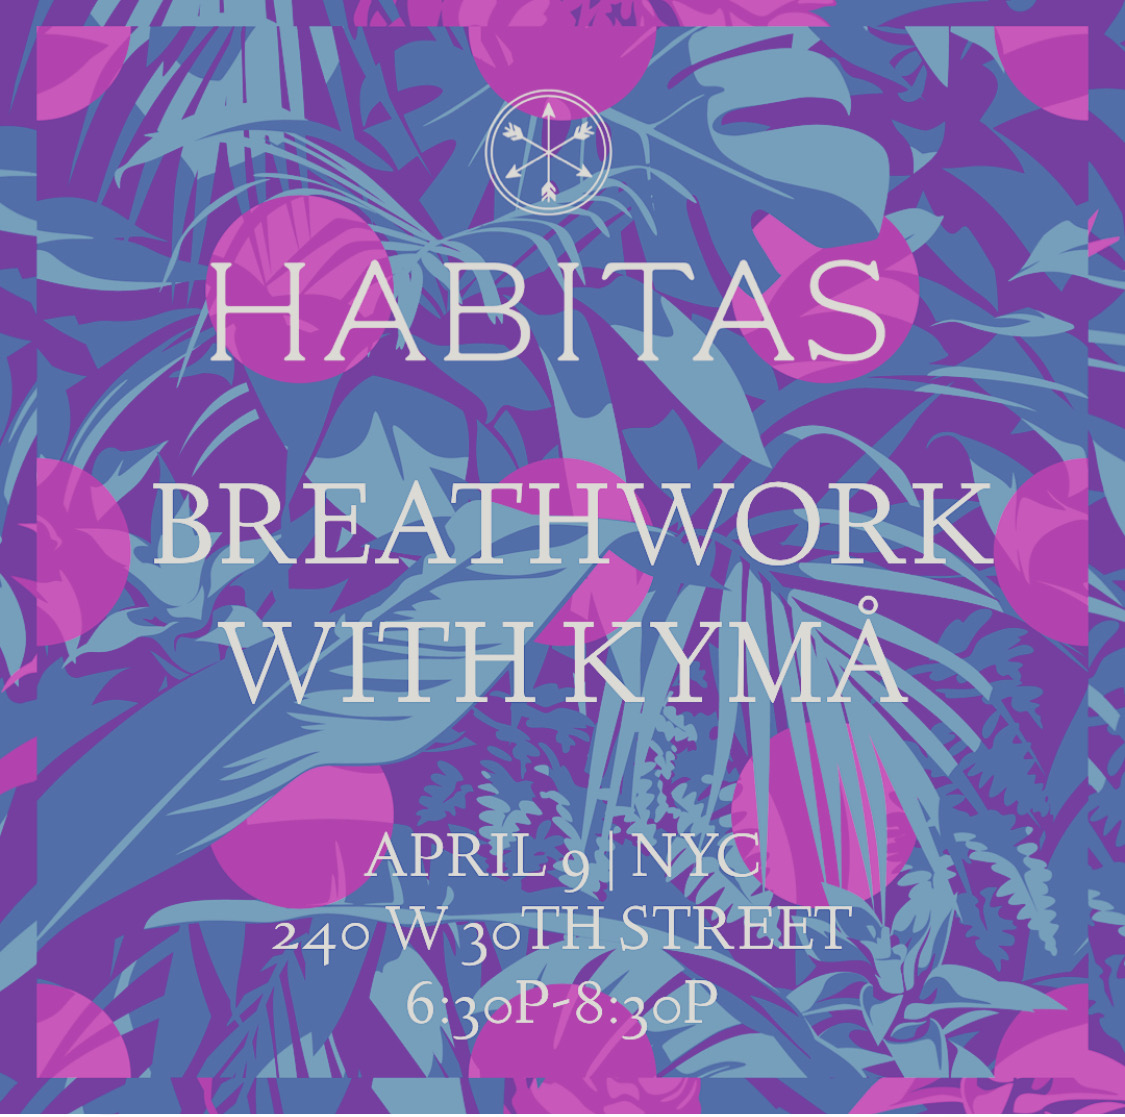 Habitas Breathwork with KYMÅ (KYMA)